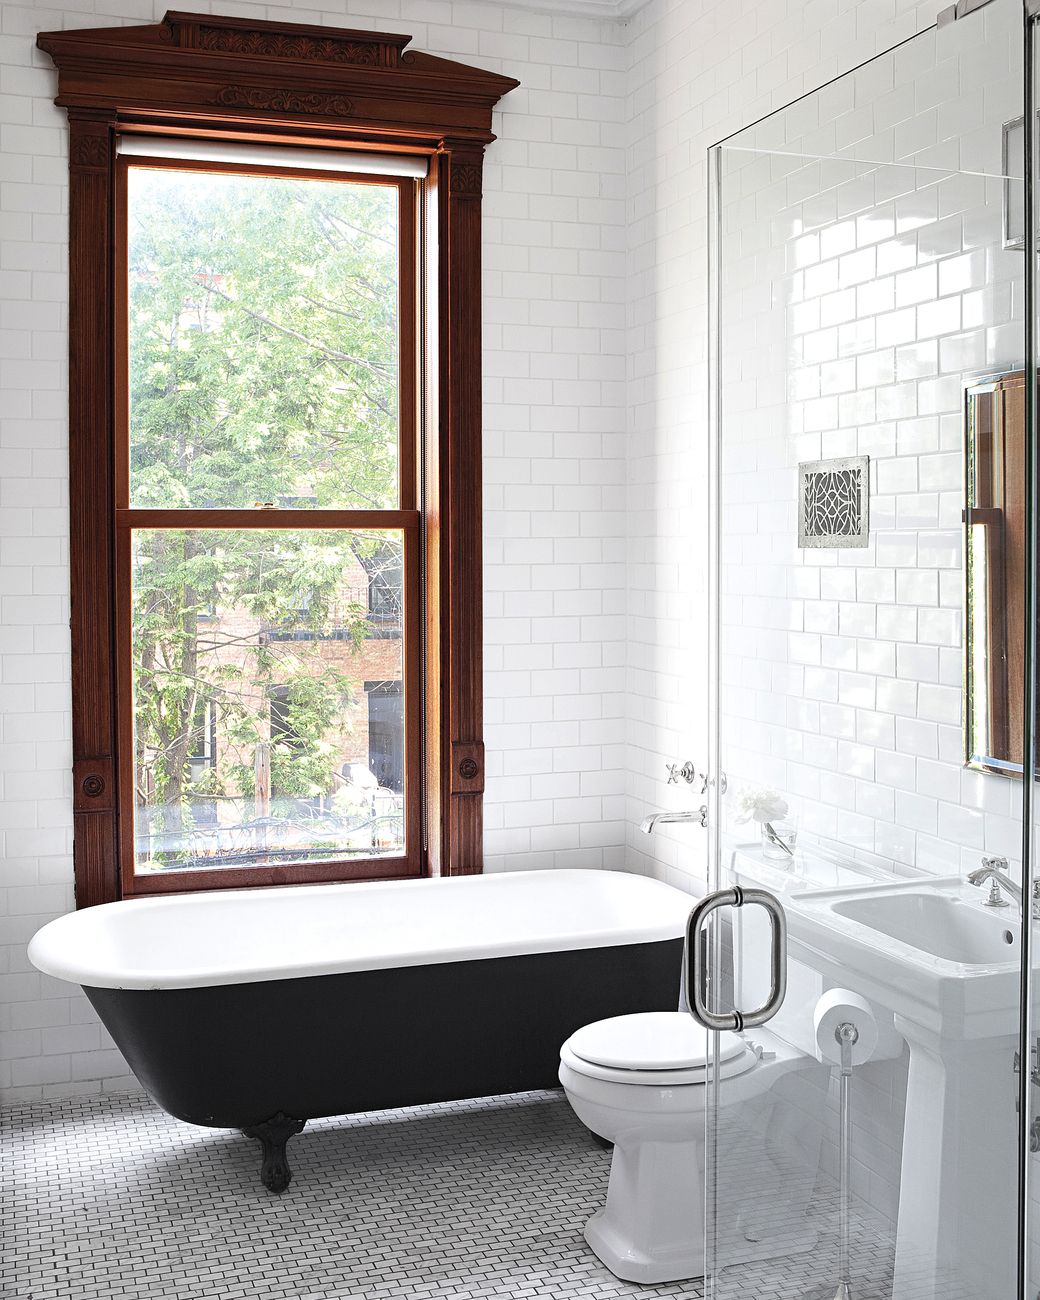 Home Tour: A Family-Oriented Brownstone in Brooklyn | 21st century ...